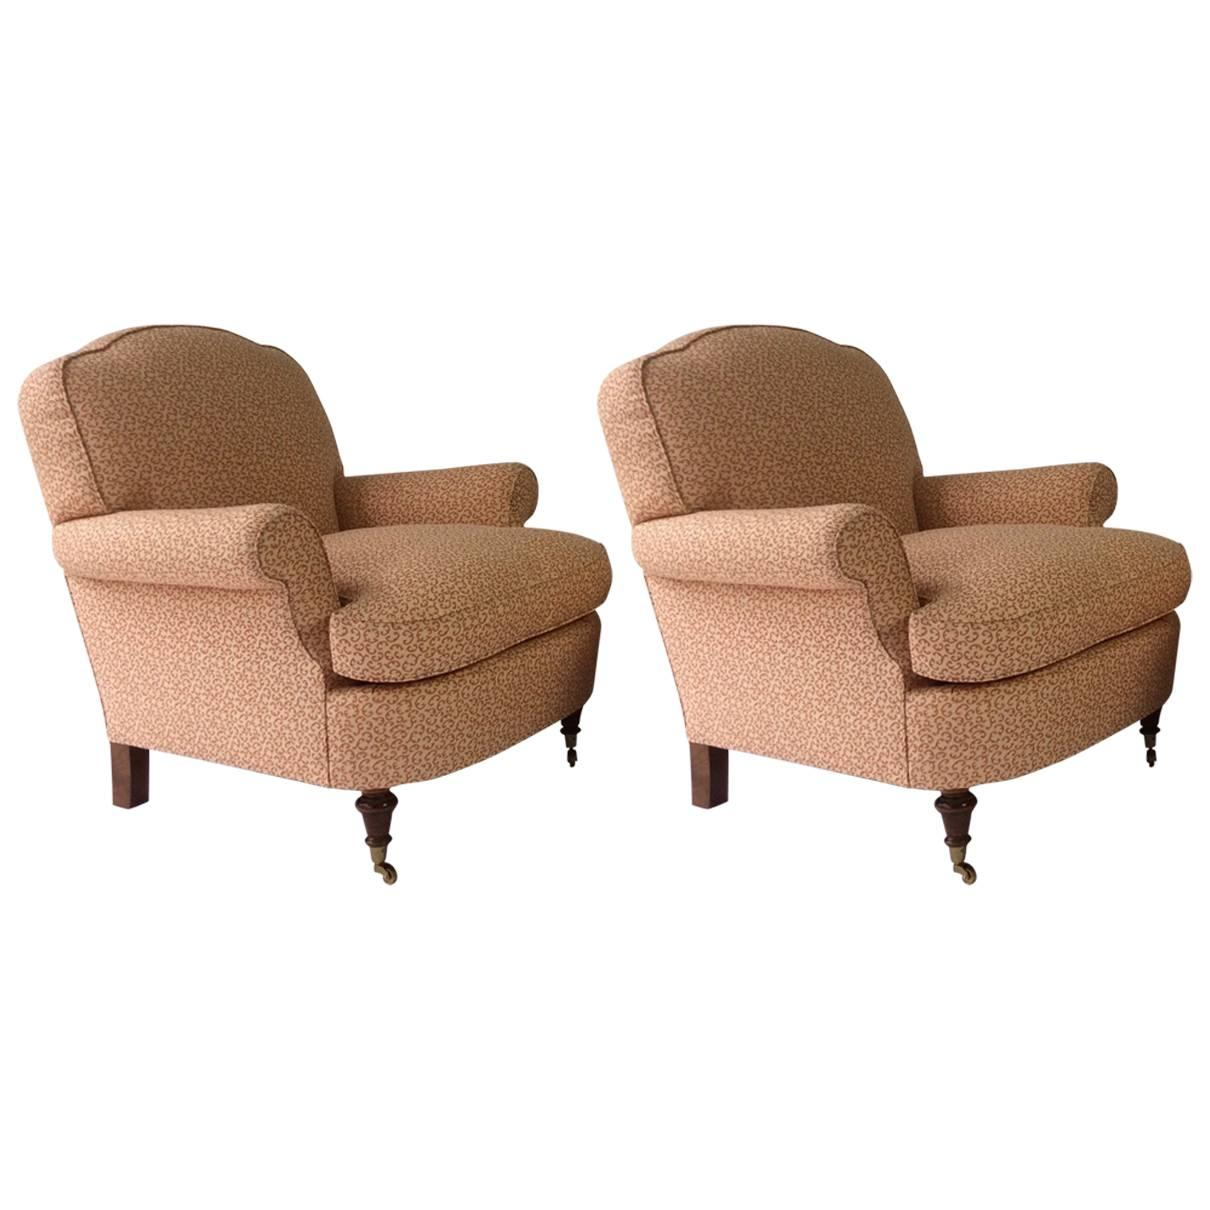 George Smith Style Club Lounge Chairs, Wood Turned Legs On Brass Castors 1